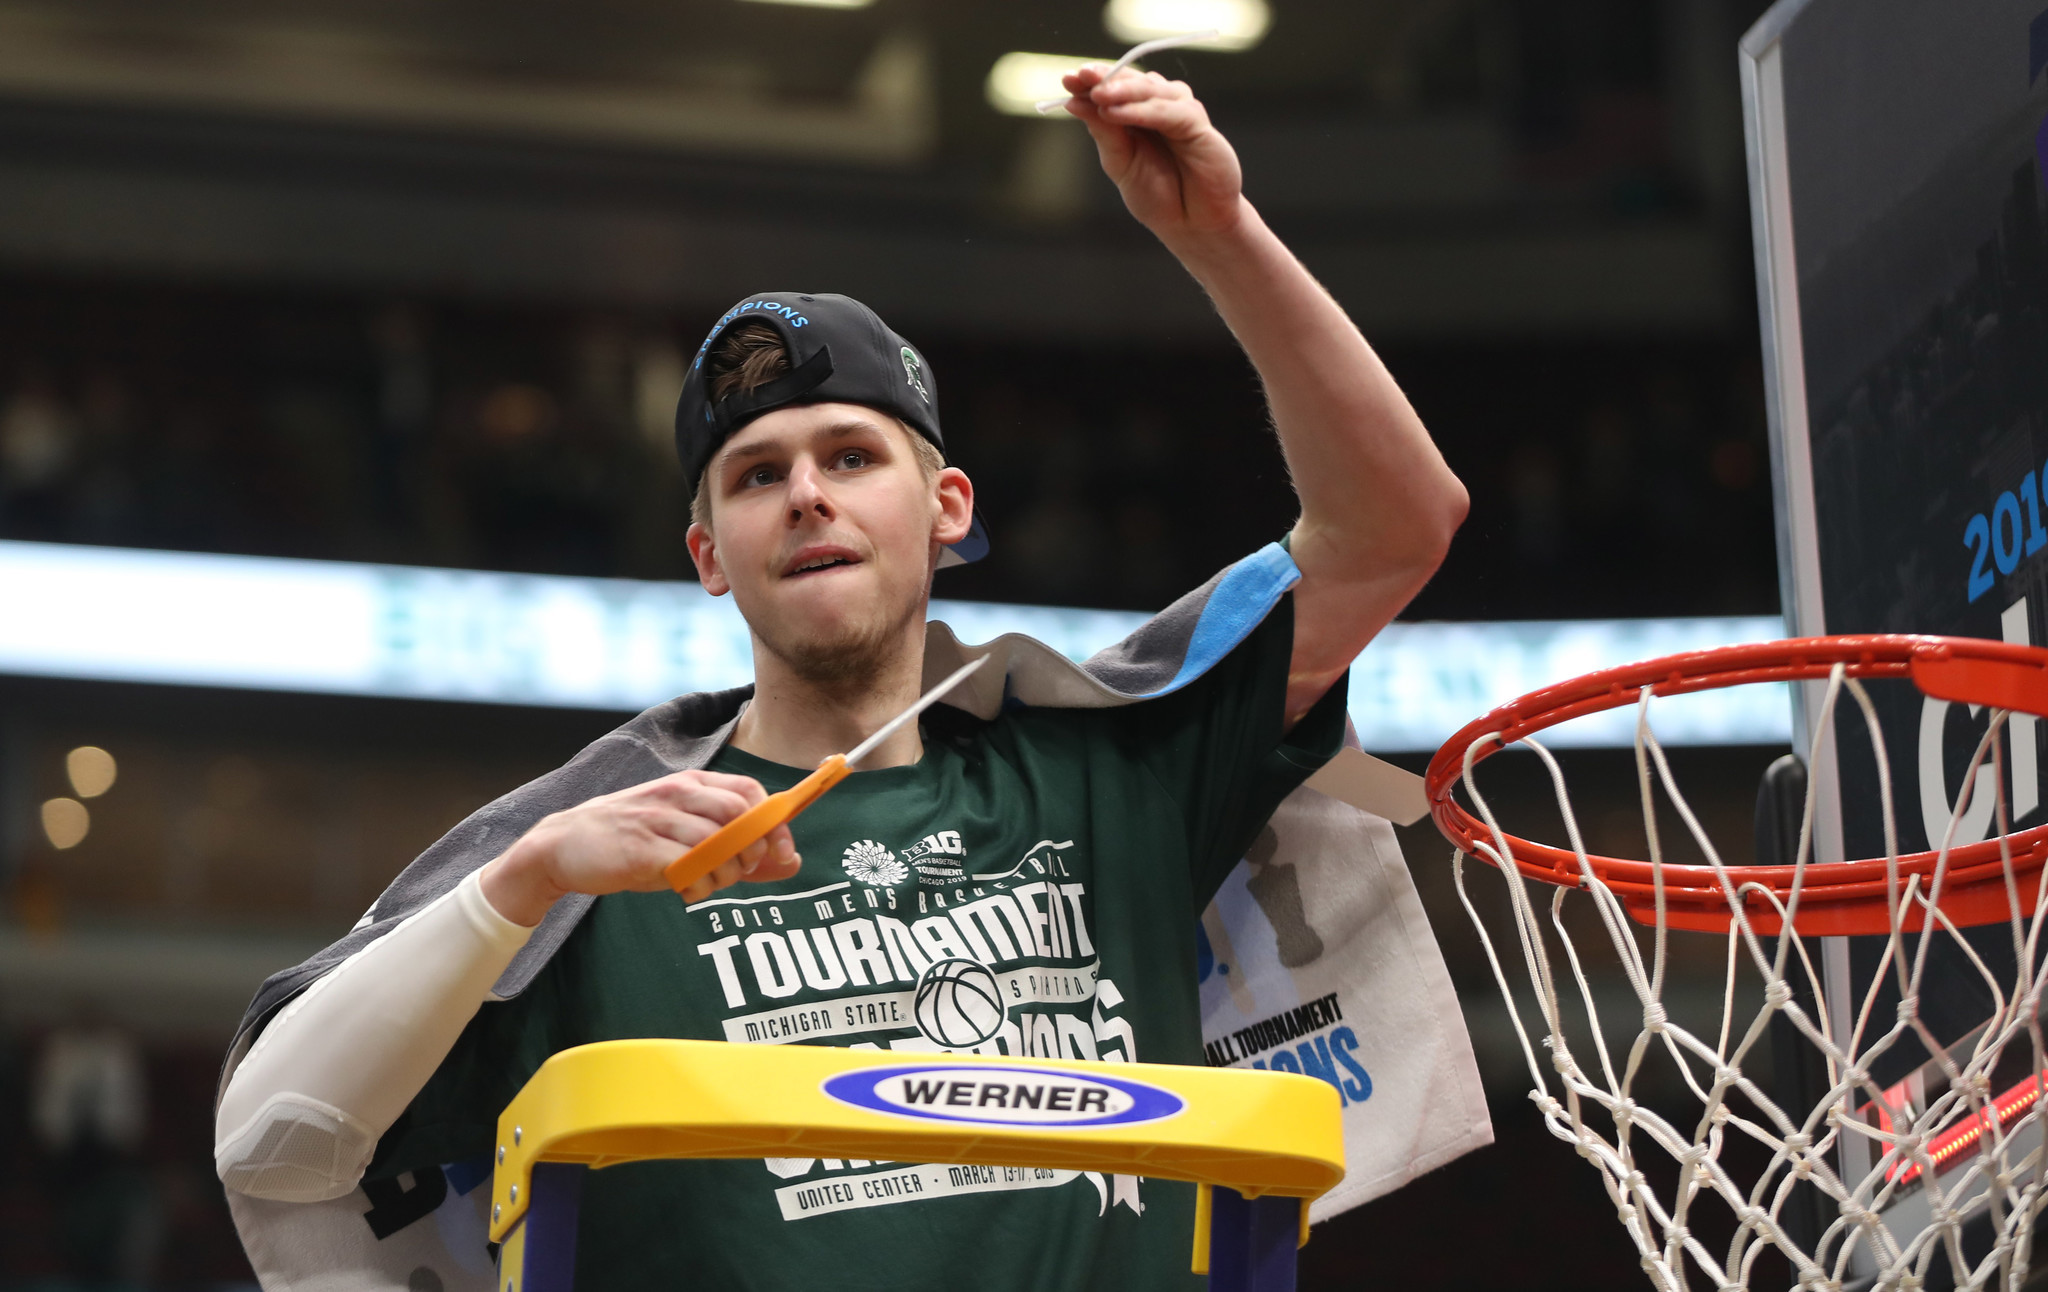 NCAA Selection Sunday winners and losers: CBS, Bradley, Big Ten, Larry Bird, TruTV and more